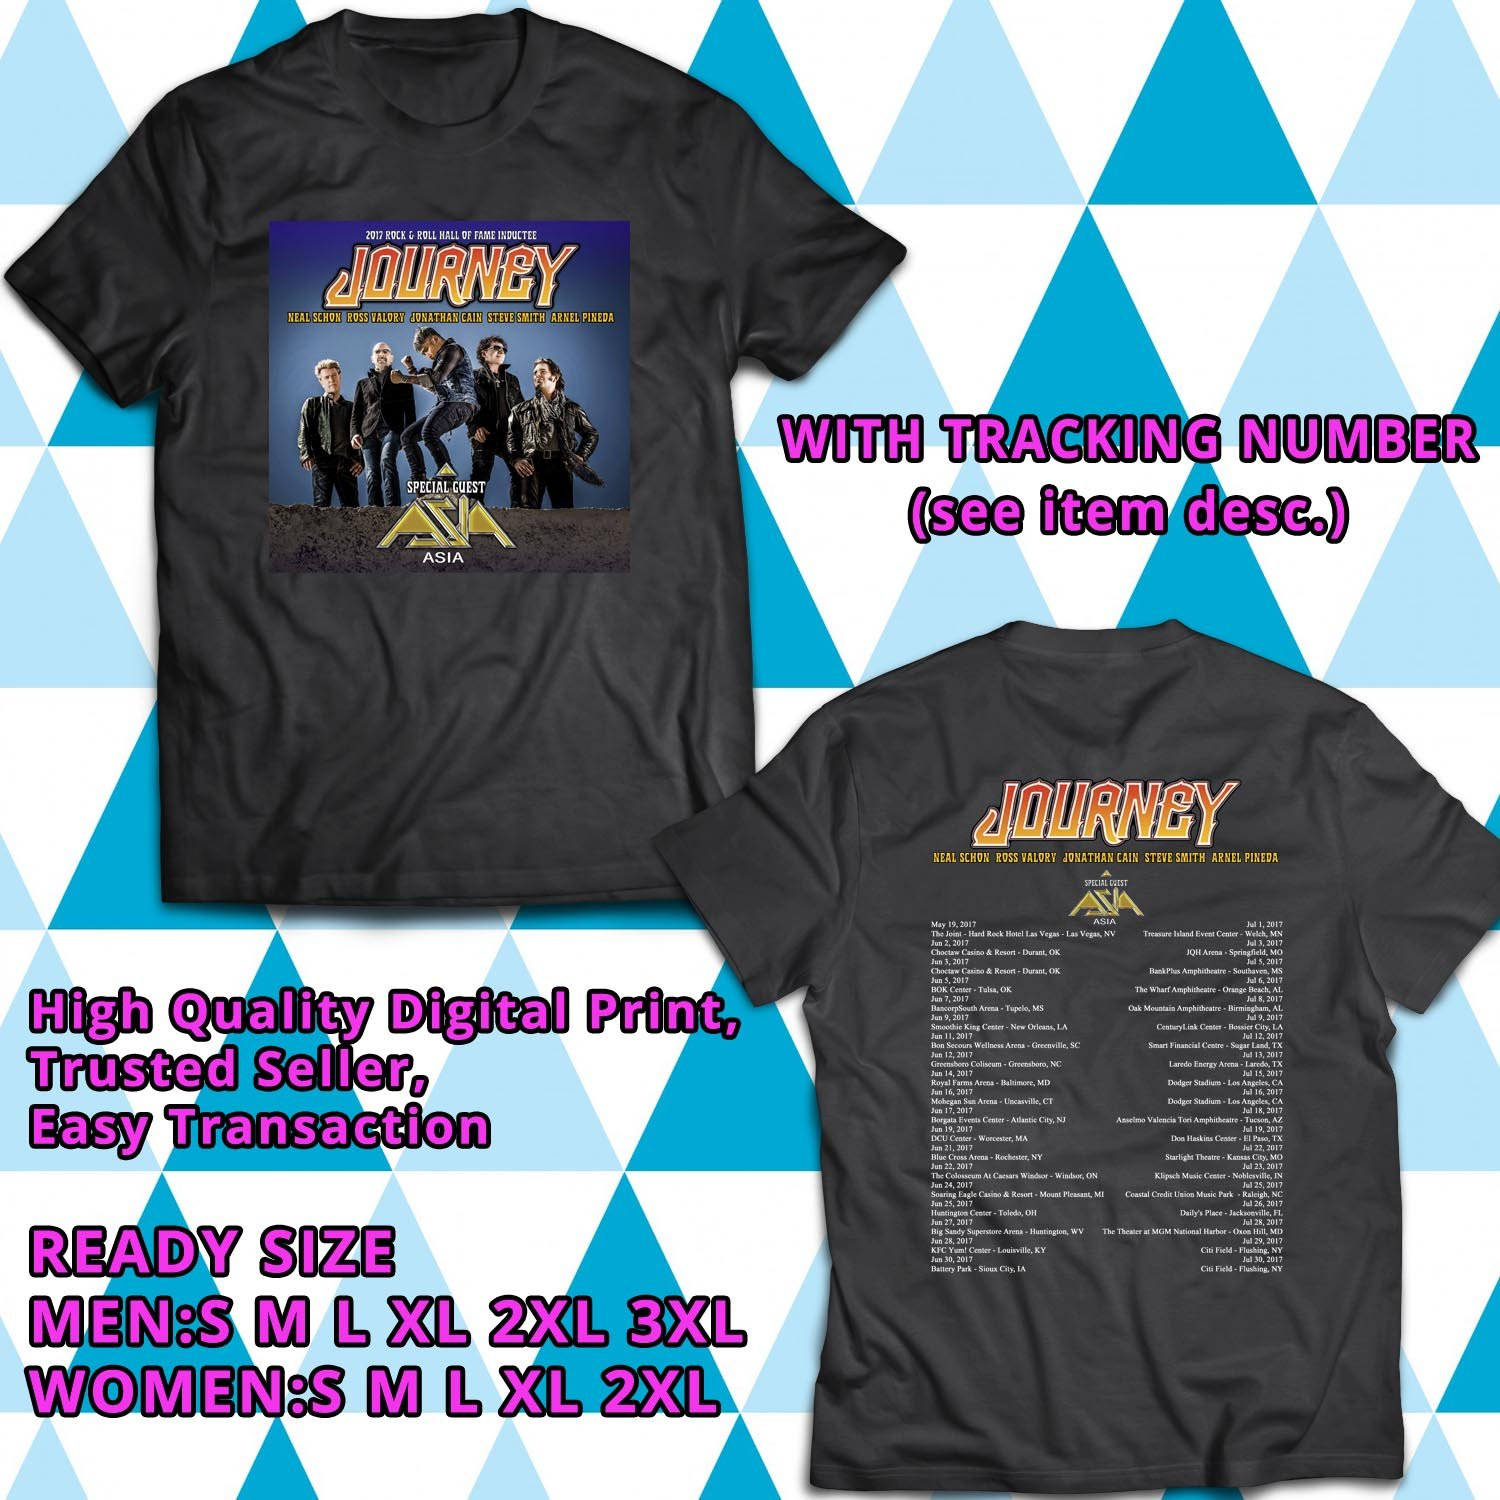 HITS JOURNEY AND ASIA NORTH AMERICA 2017 BLACK TEE'S 2SIDE MAN WOMEN ASTR